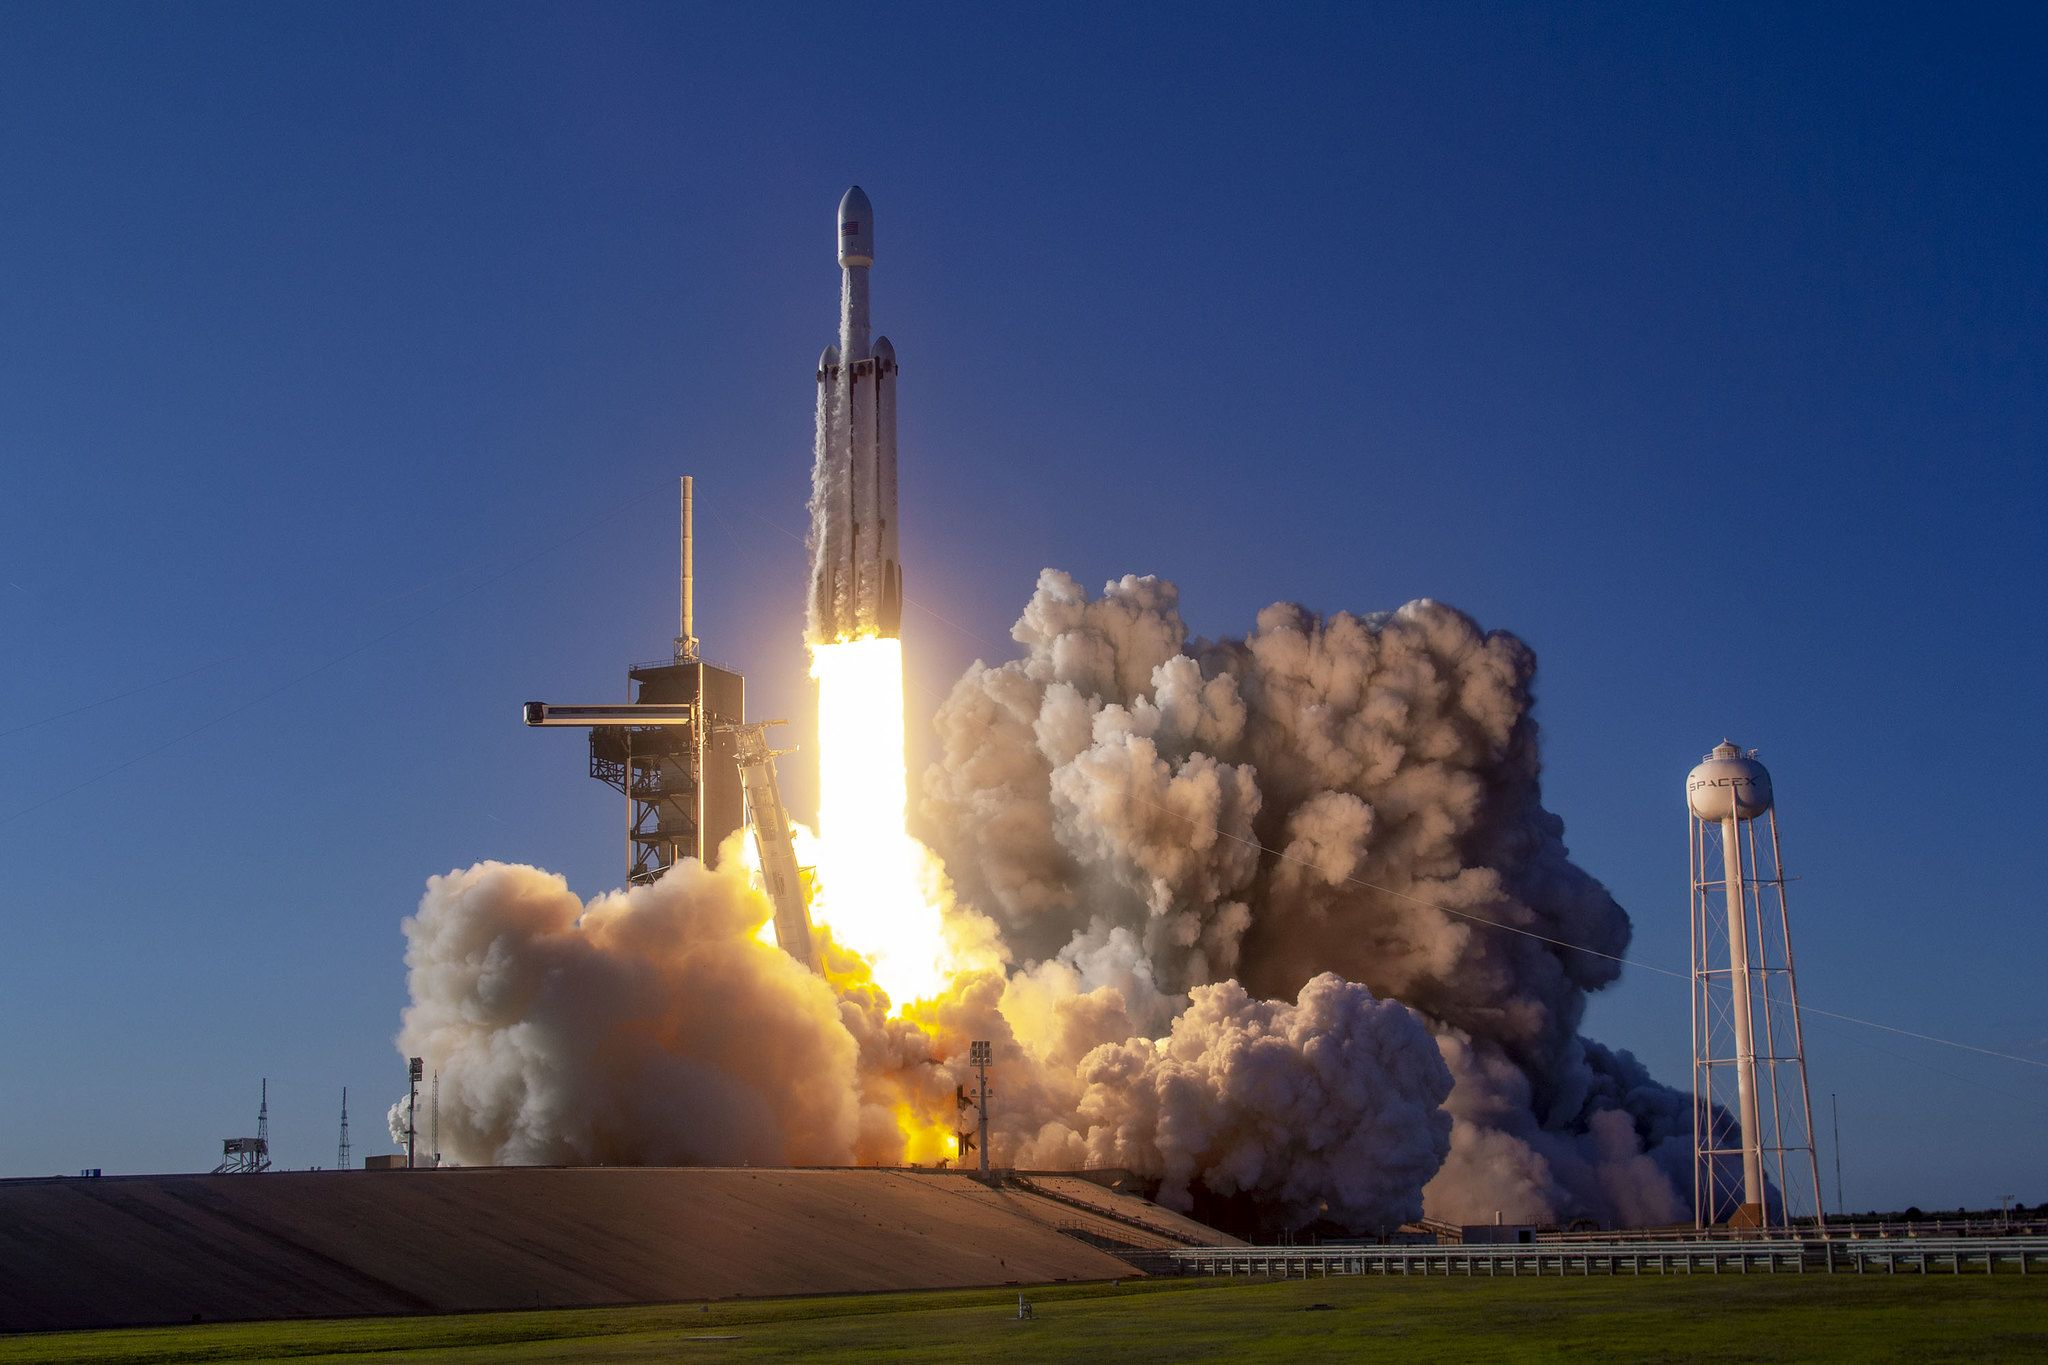 SpaceX launches its Falcon Heavy for the Arabsat-6A mission.